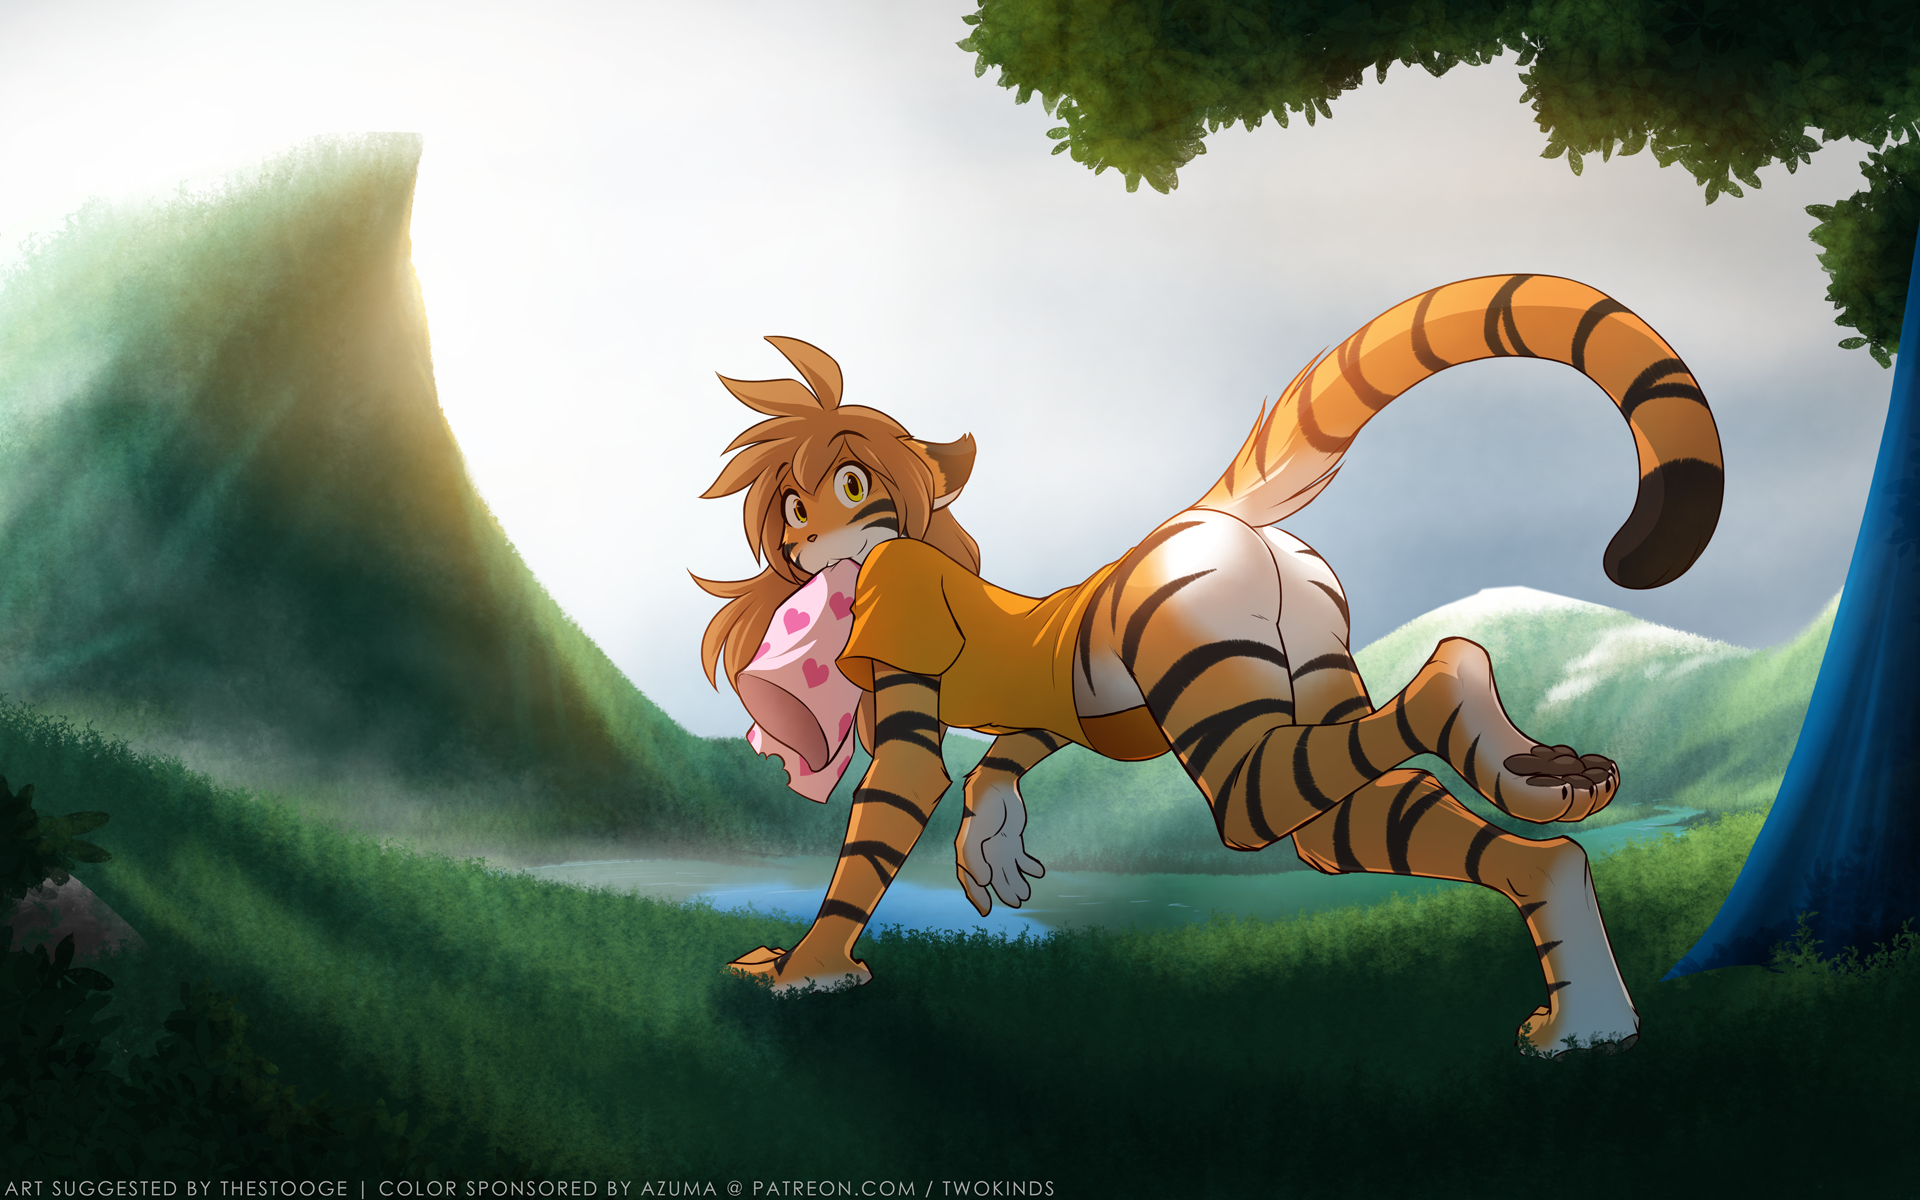 Pants-Free Policy by Twokinds